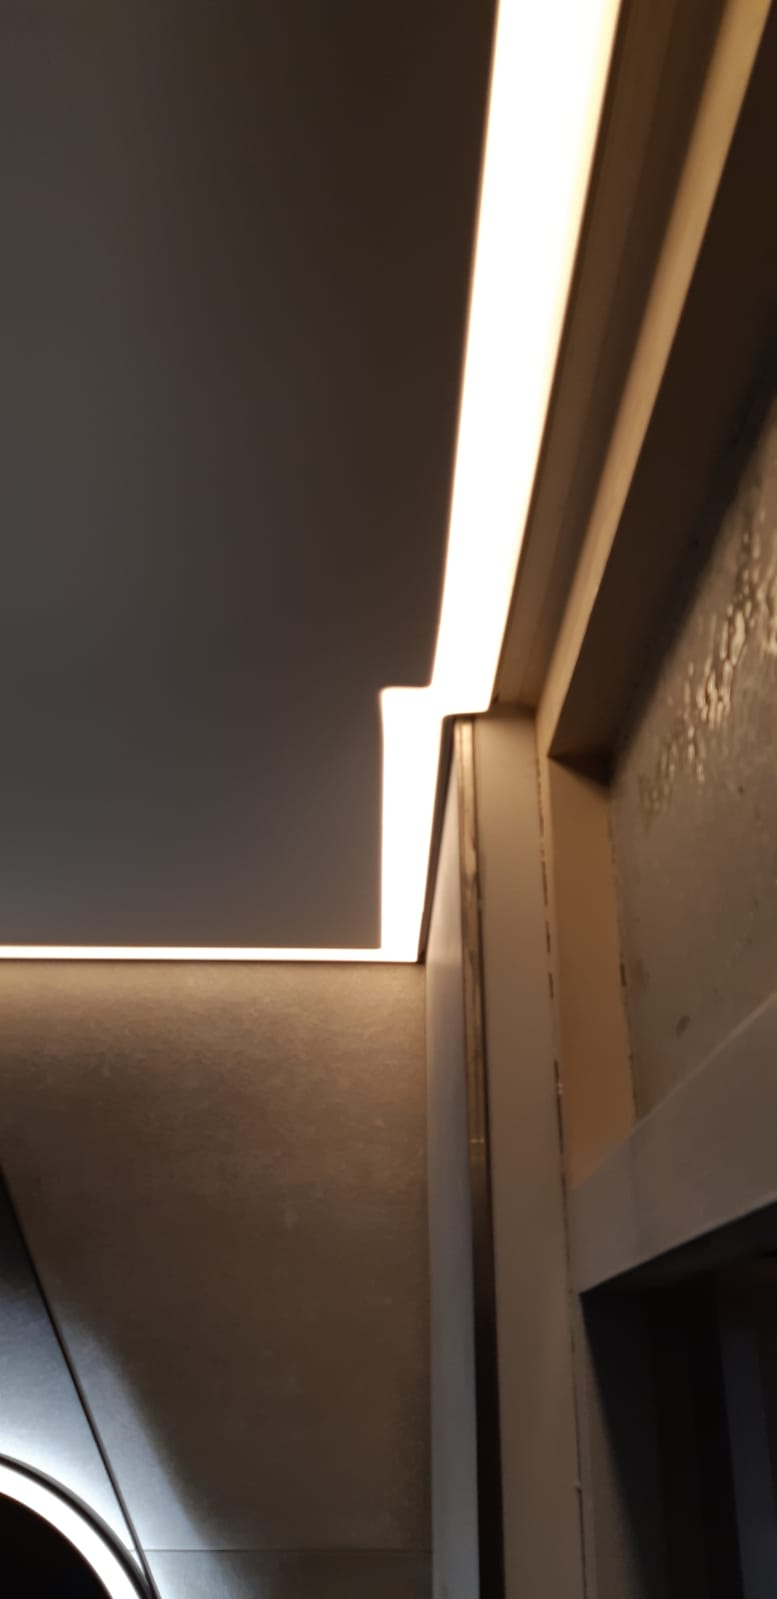 rand LED verlichting badkamers in spanplafond